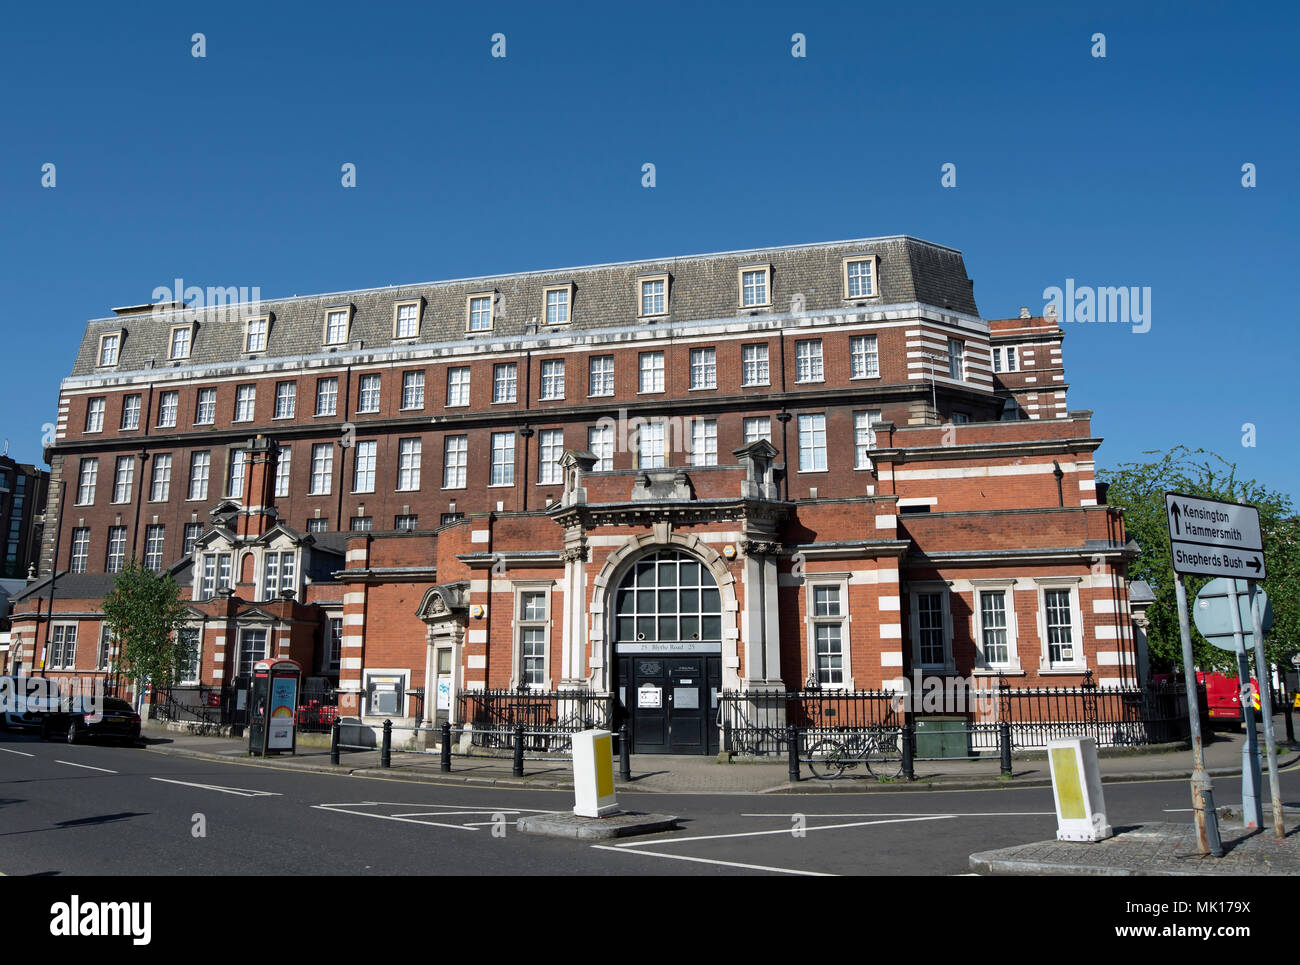 the 1920s east wing of blythe house, a grade II listed building of 1899 to 1903 seen in the background, west kensington, london, england - Stock Image